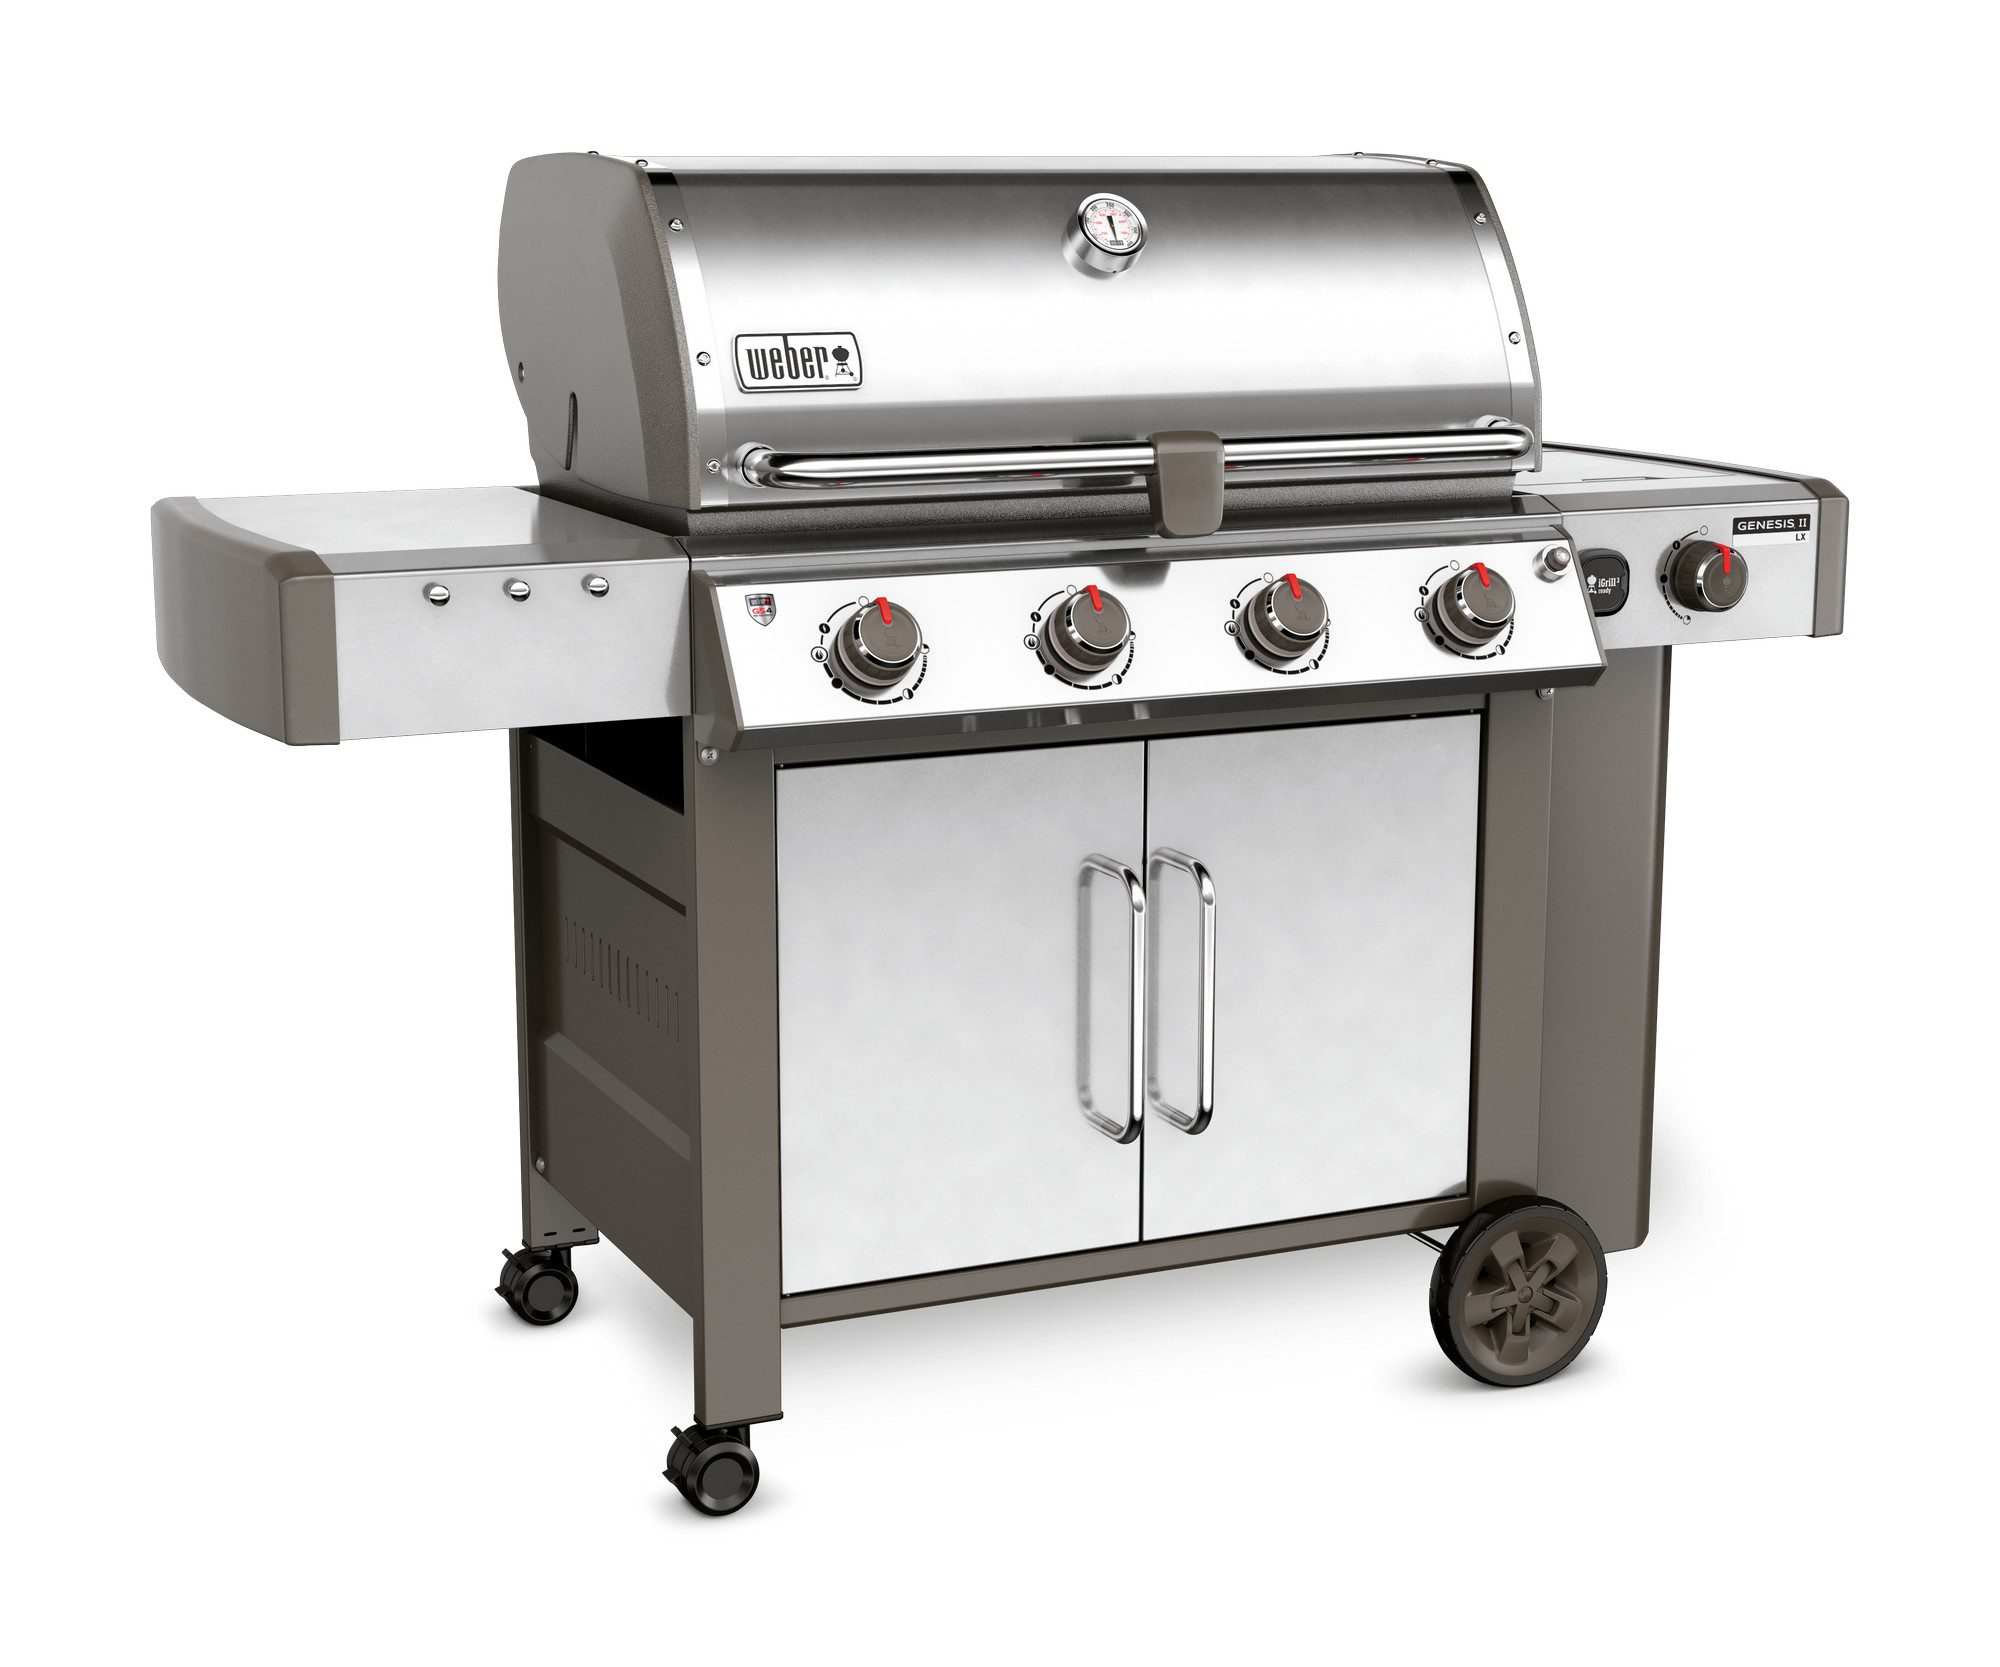 The entire line of Weber® grill products outperform and outlast many of their competitors. Anyone who has ever owned a Weber grill knows they are beautiful, high quality products that are built to last. Weber® gas grills come with durable stainless-steel burners, a thick-walled cast-aluminum cooking box, a rugged robot-welded steel cart, and porcelain-enameled or stainless steel lid.